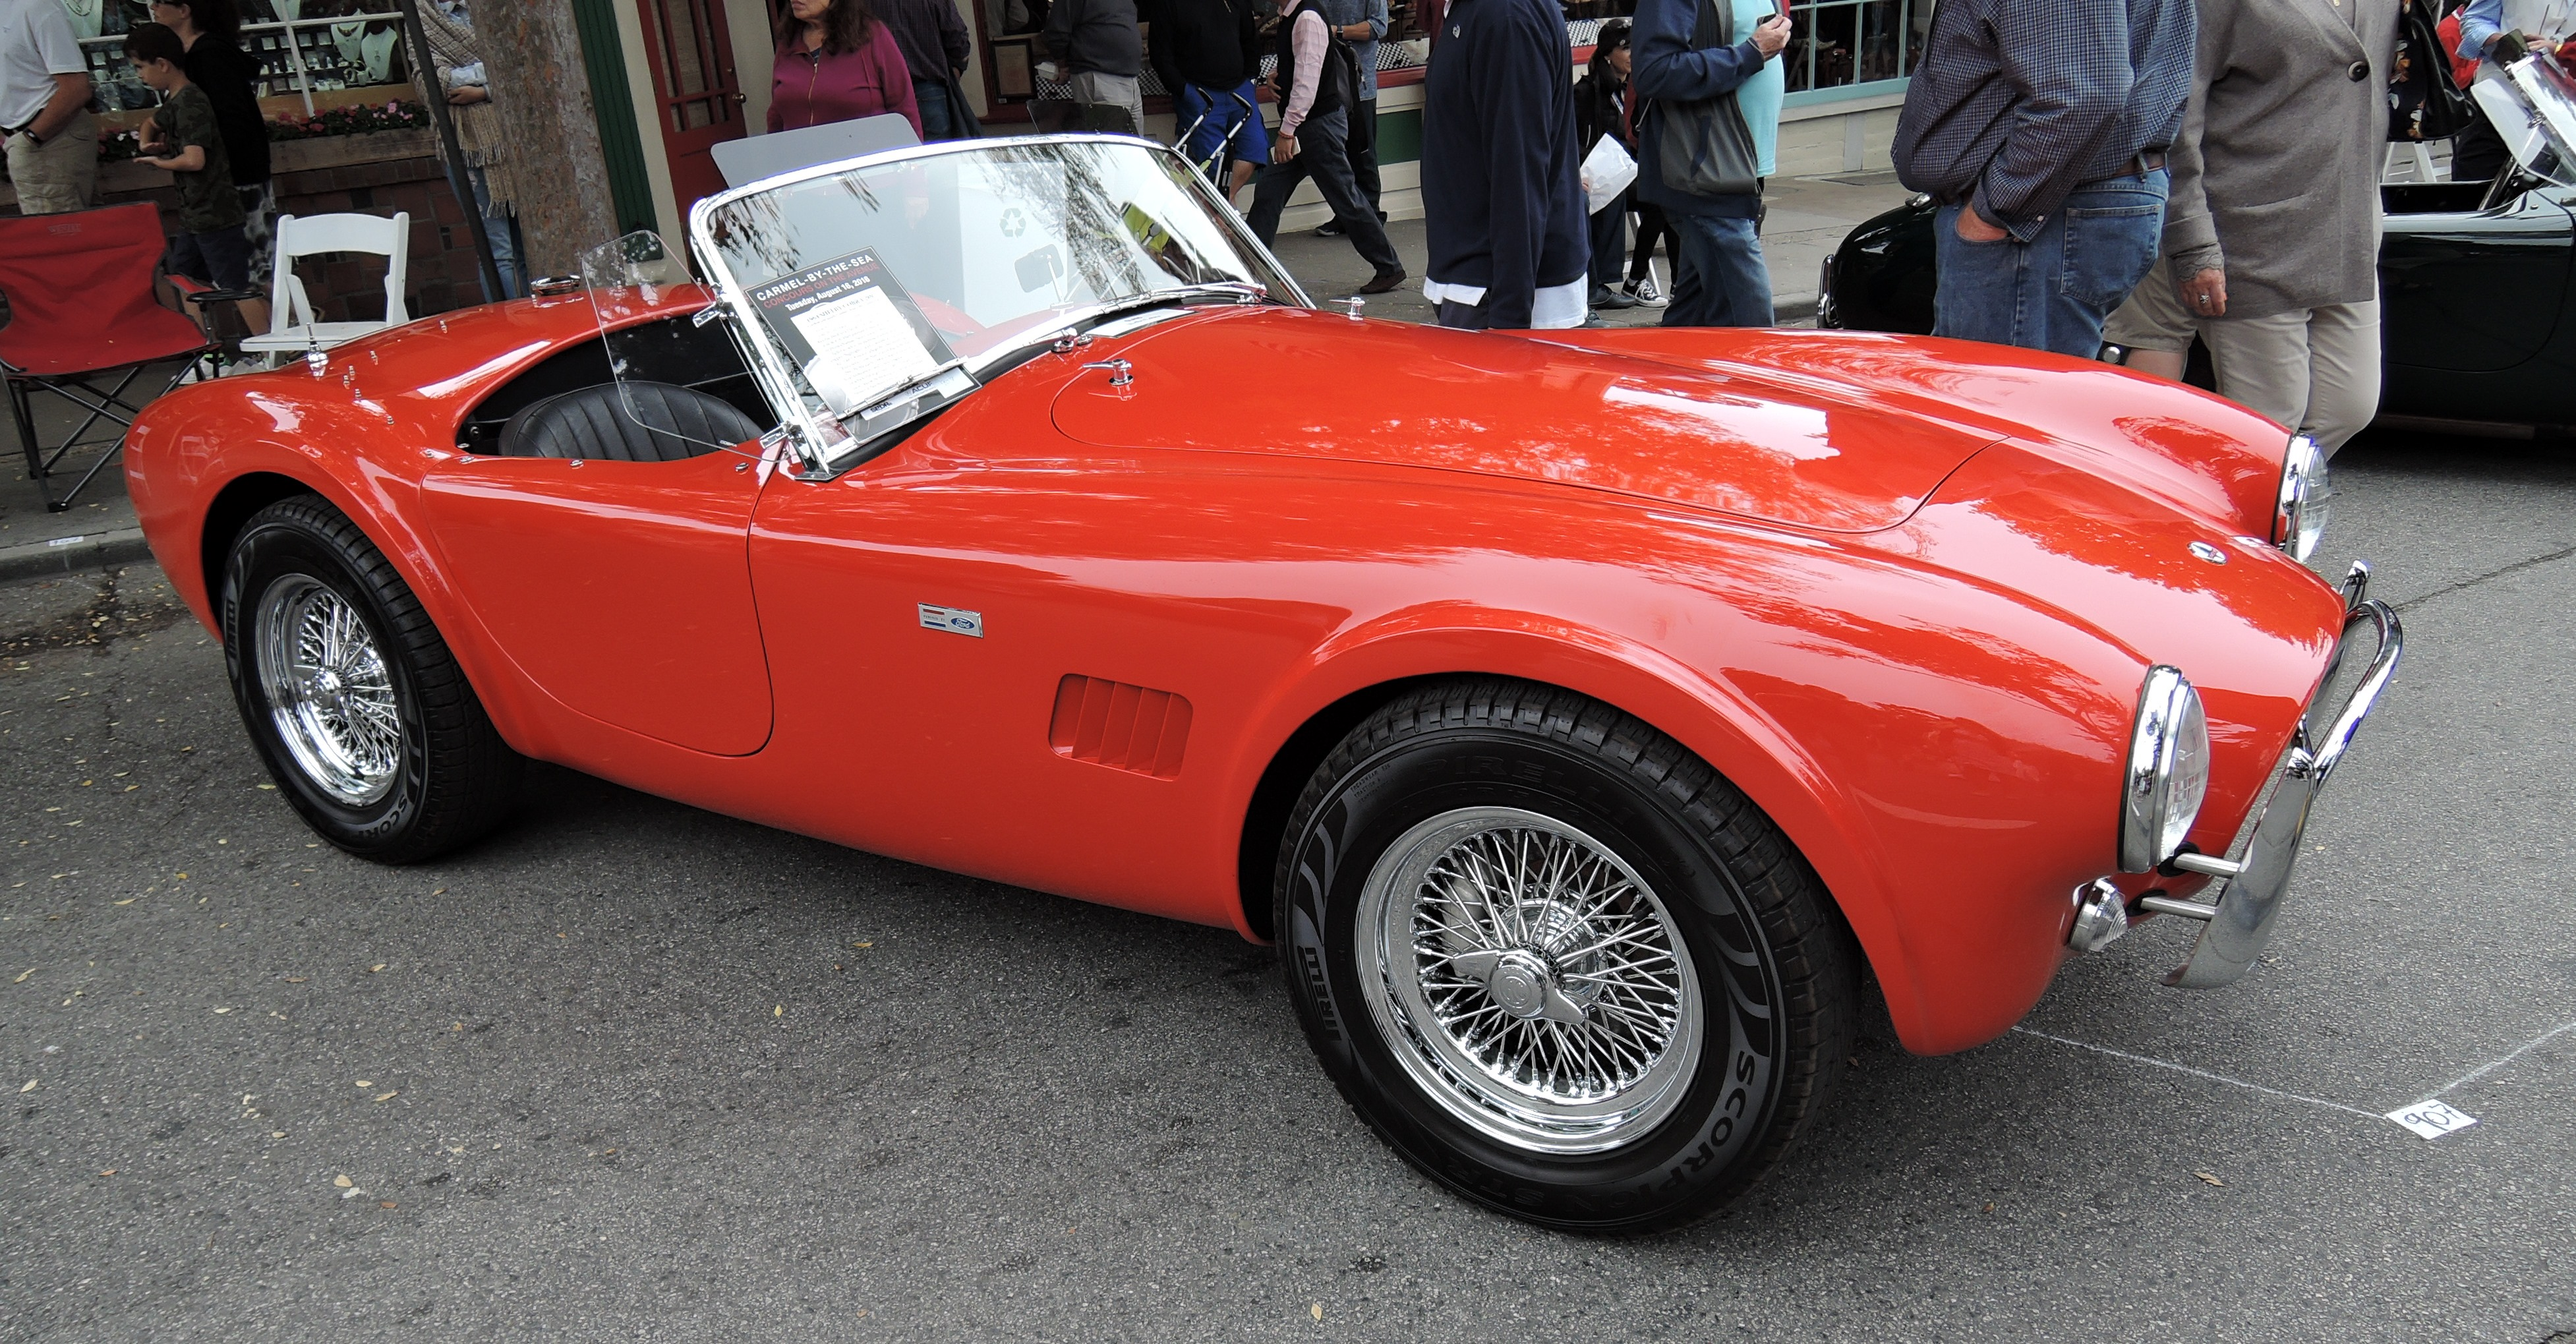 red 1964 Shelby Cobra 289 - Concours on the Ave Carmel